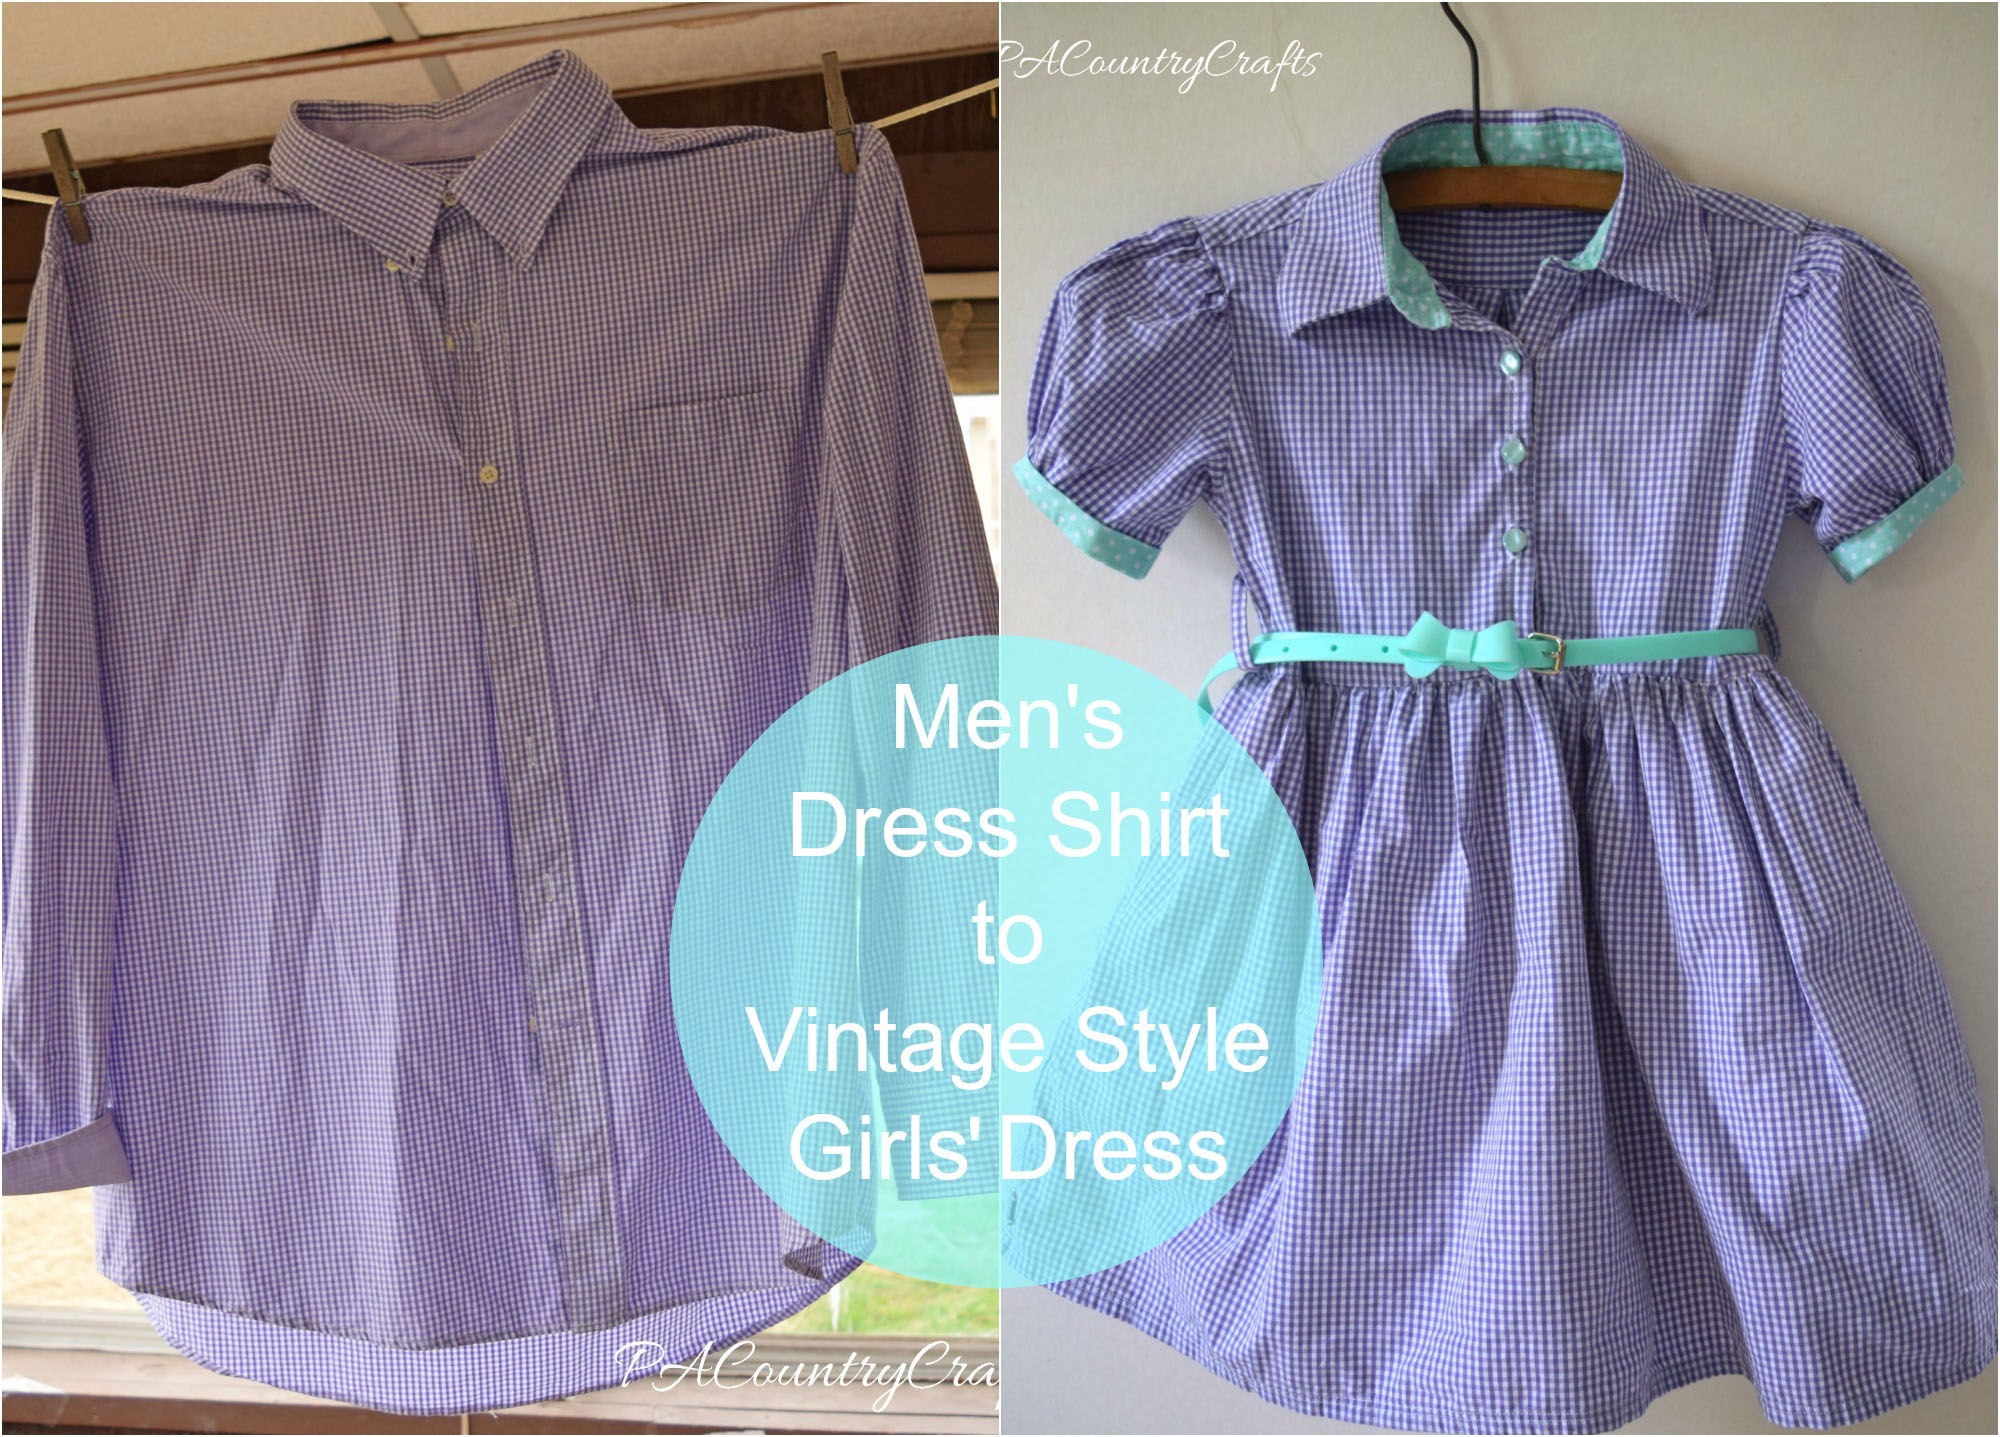 15+ Creative Ways To Repurpose Men's Shirt Into Little Girl's Dress -- Men's Dress Shirt to Girls' Vintage Style Dress